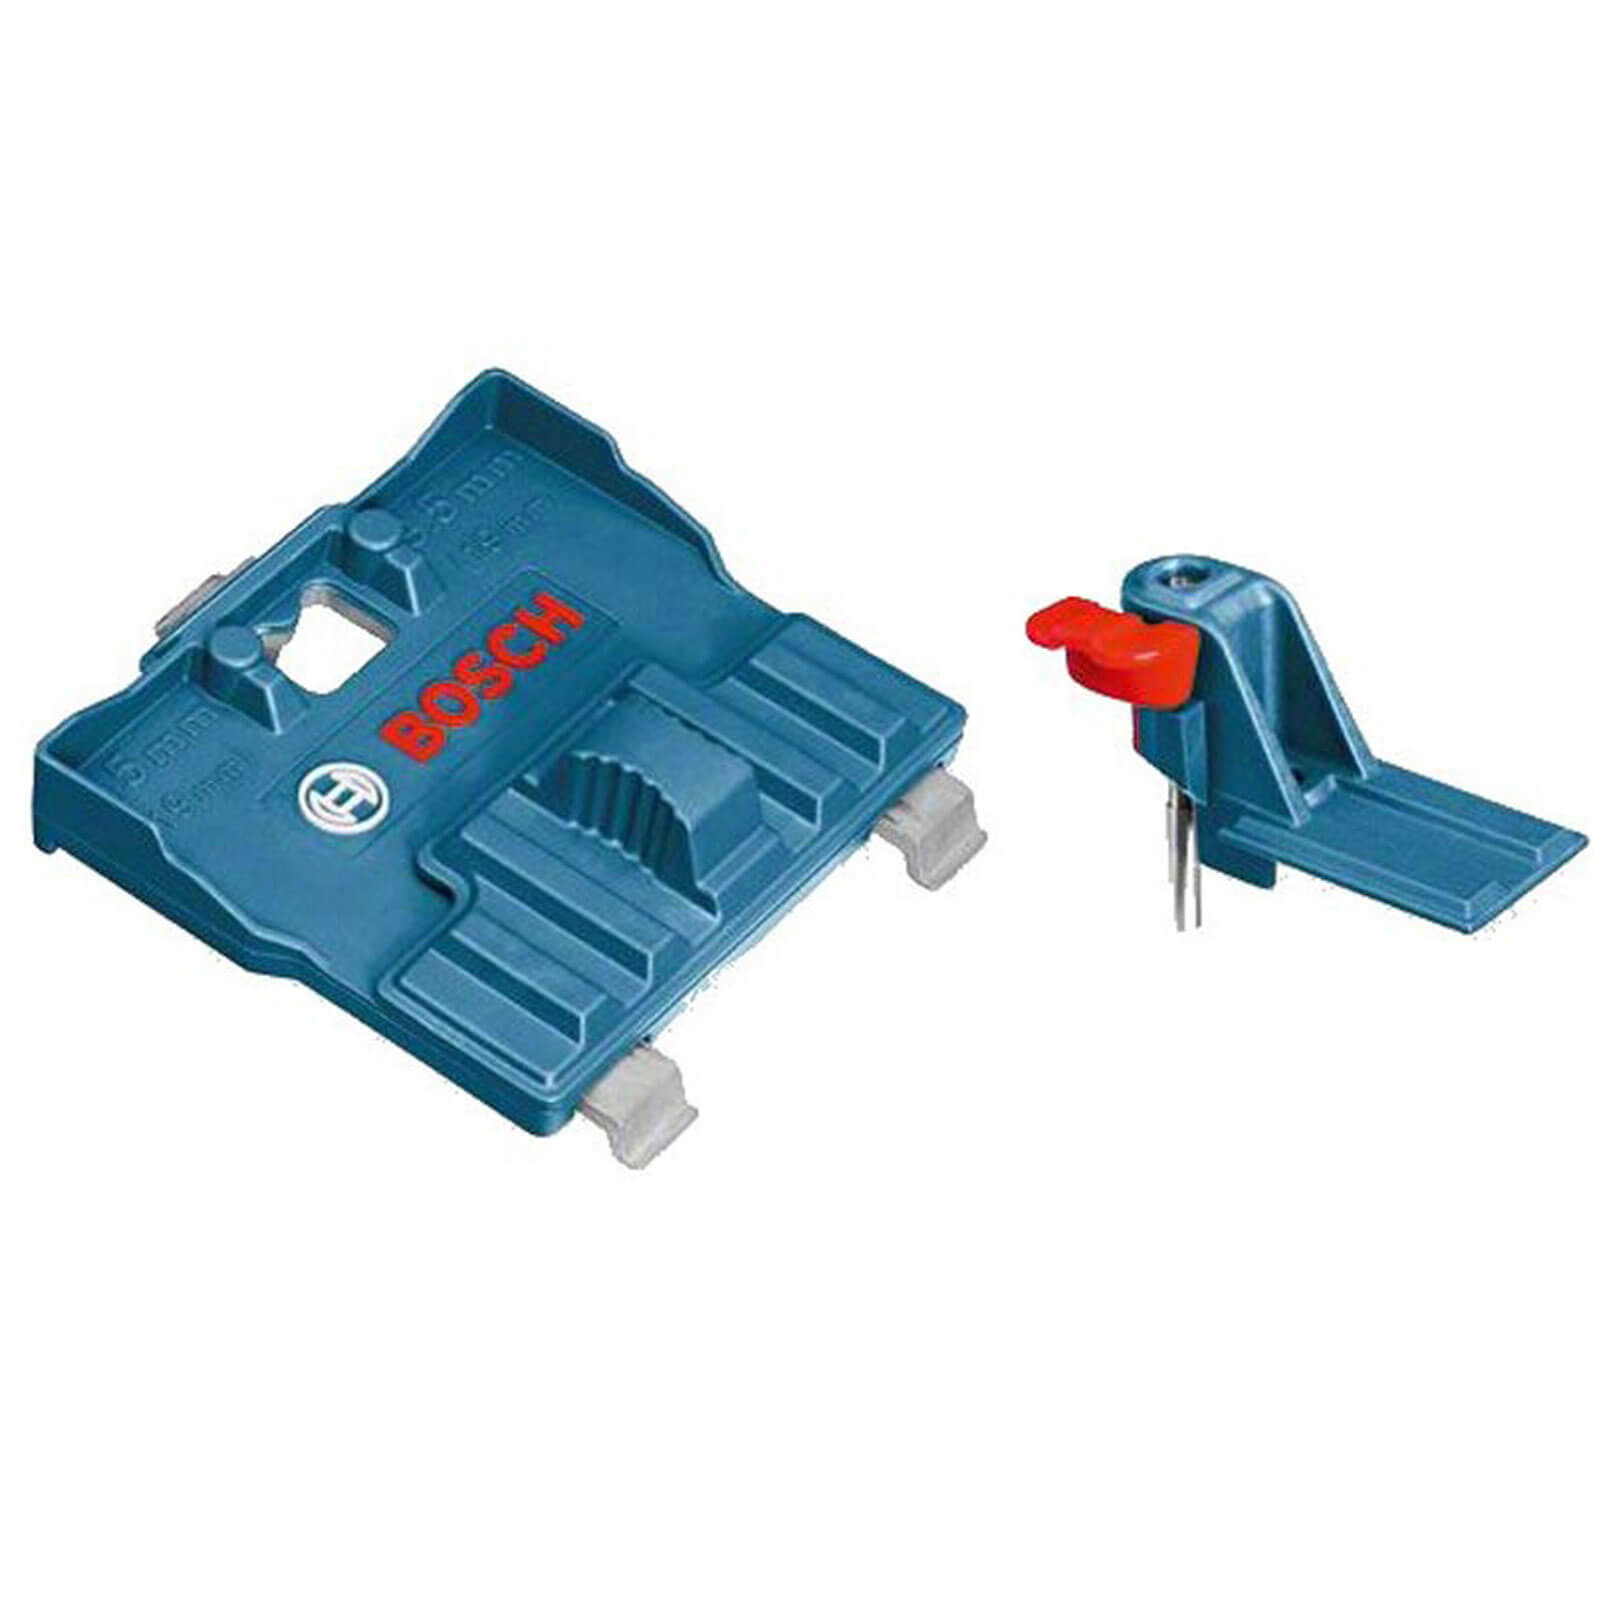 Image of Bosch RA 32mm Hole Layout Adaptor for FSN Guide Rails